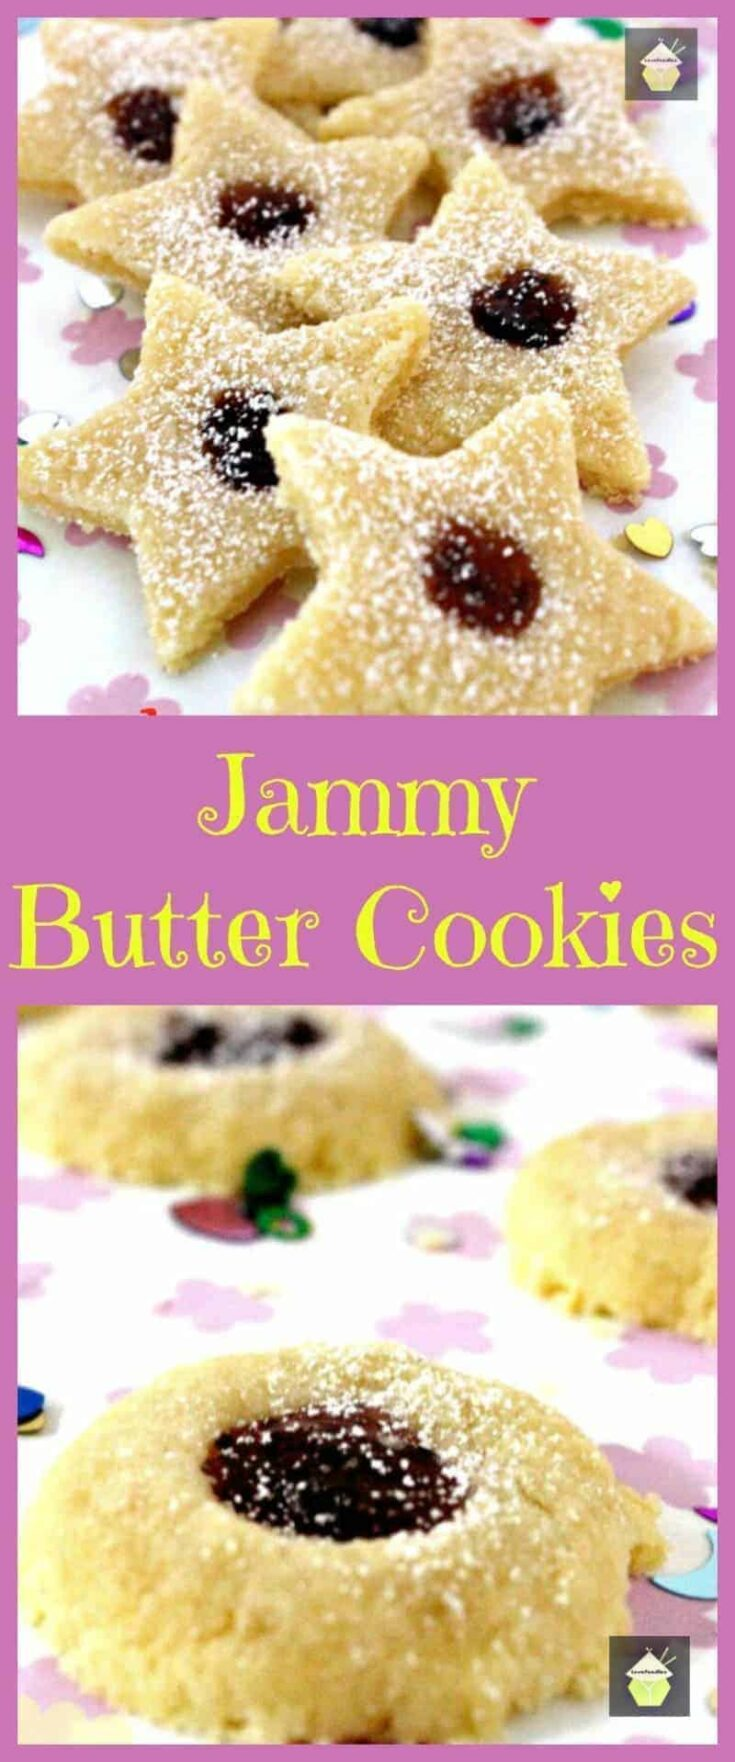 Jammy Butter Cookies. Melt in your mouth Vanilla butter cookies with your favorite jam in the middle. Yummy!